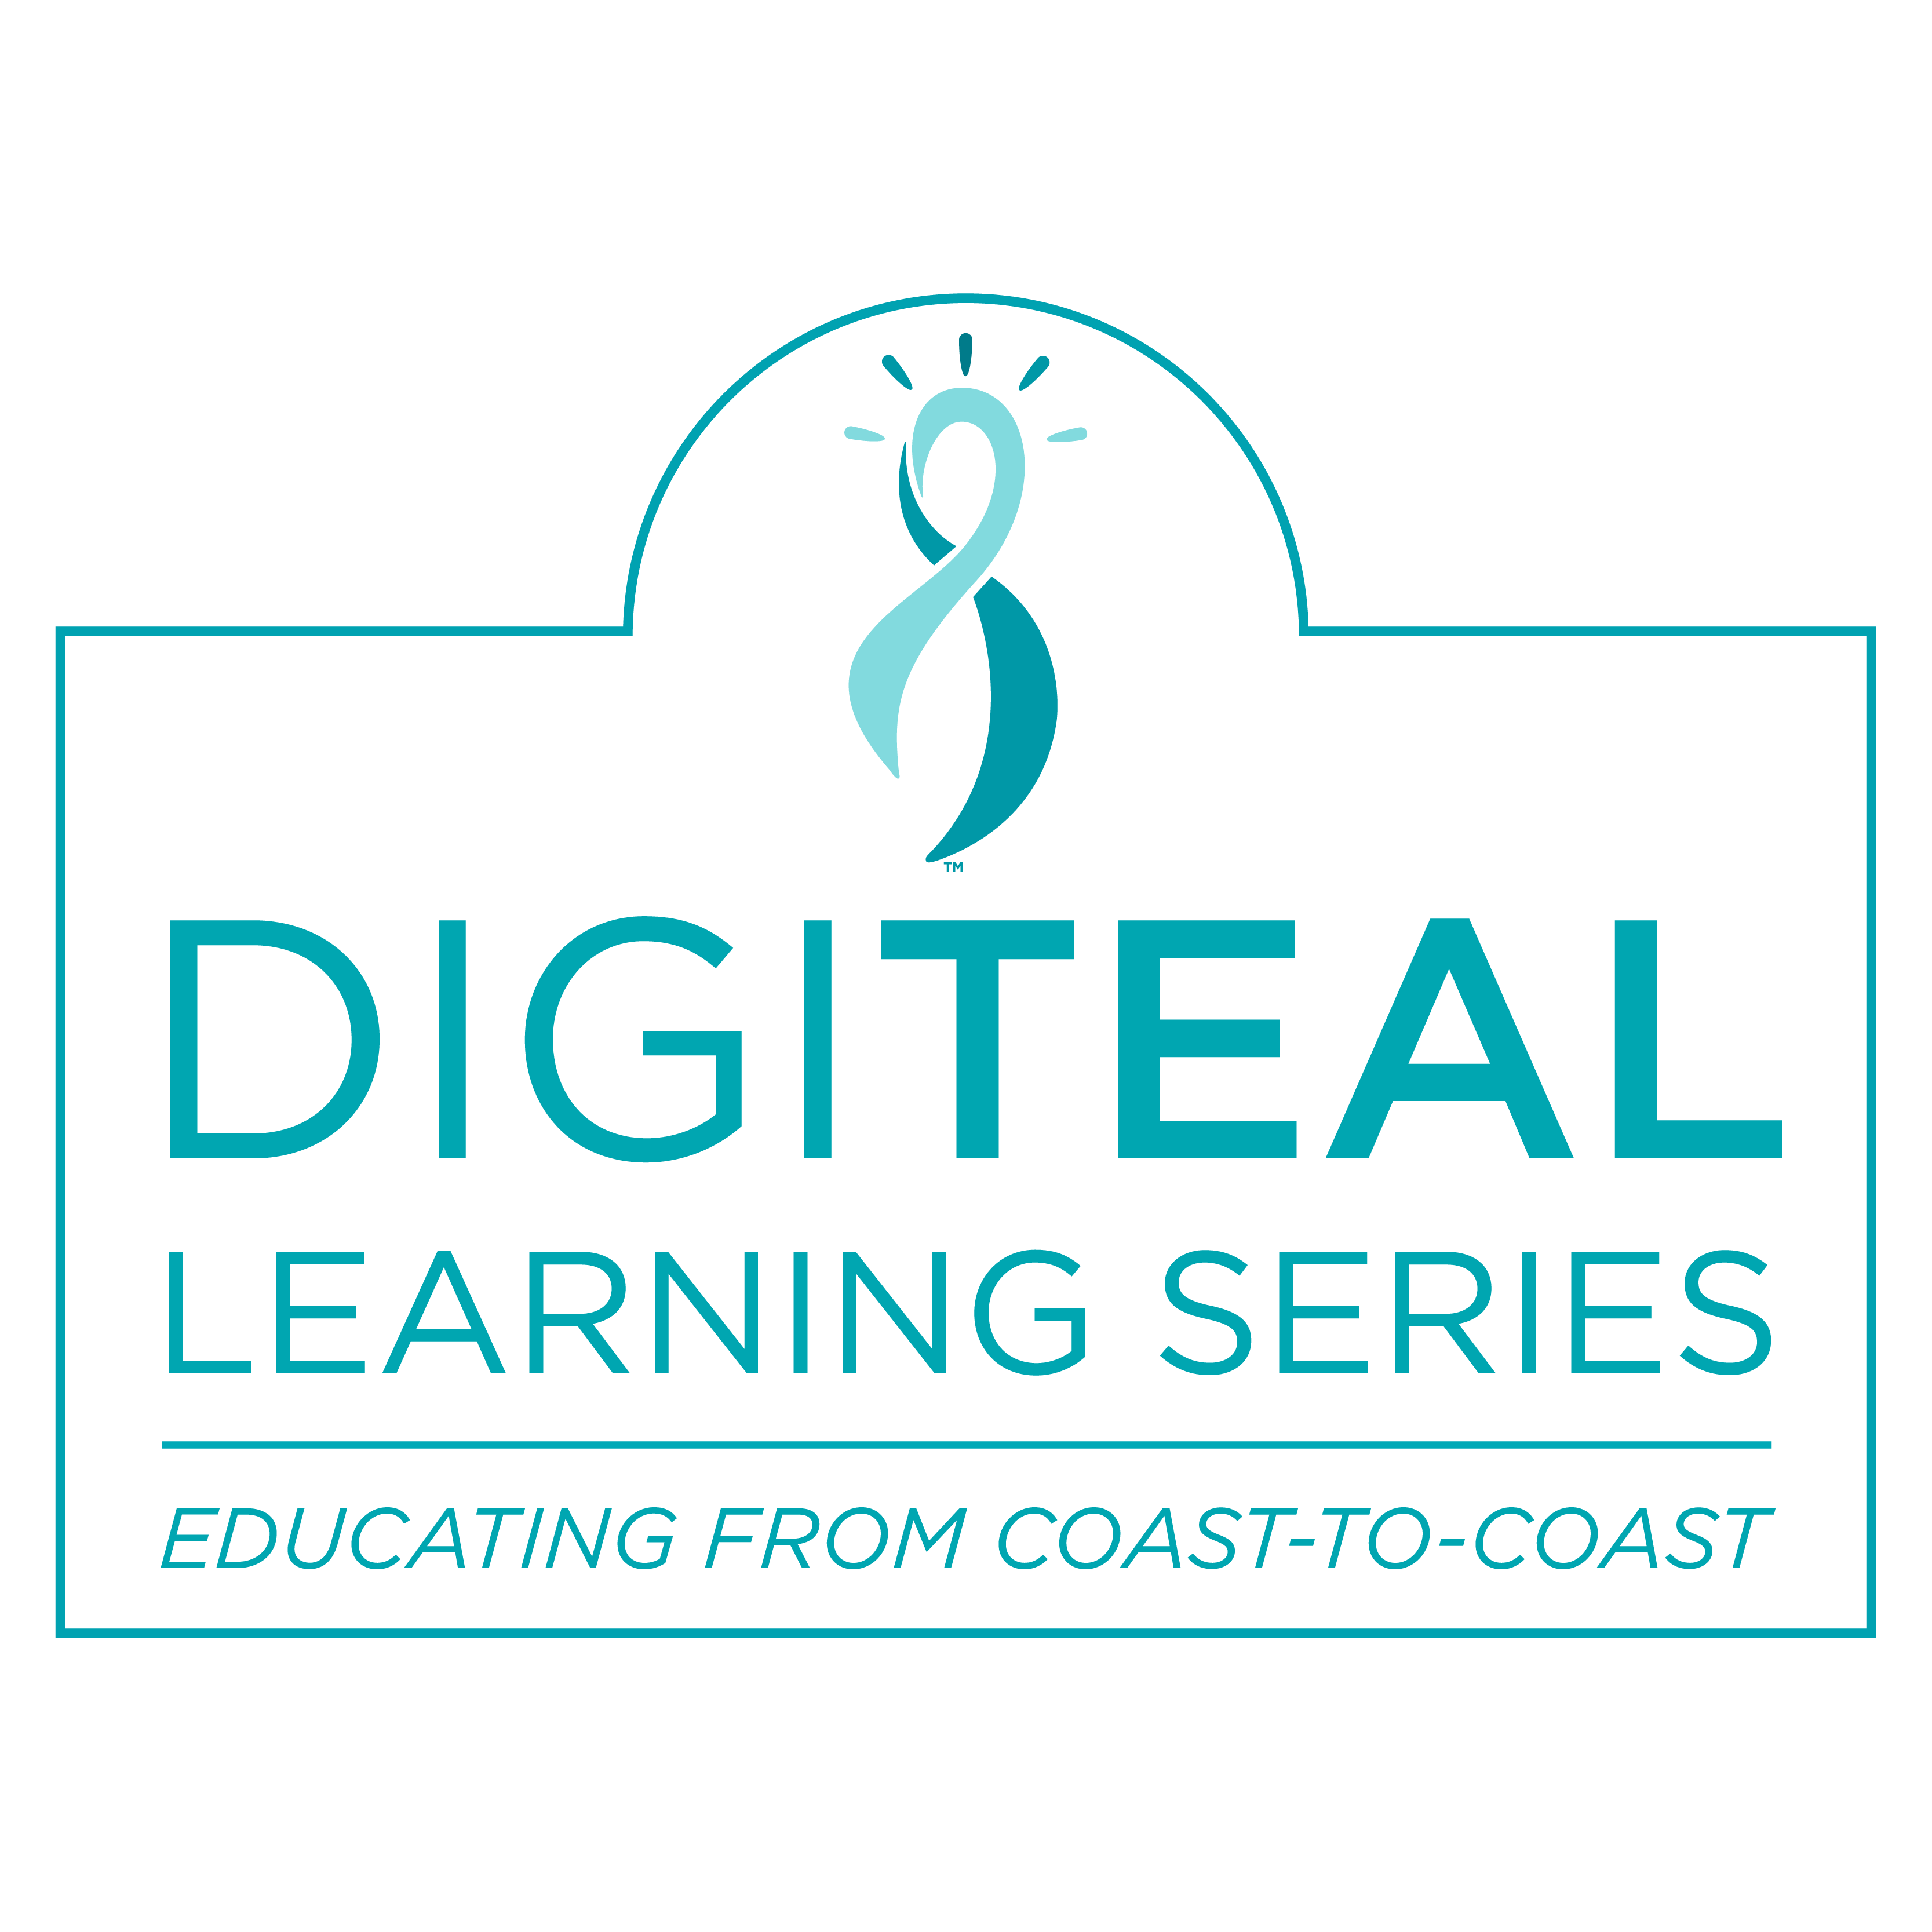 Logo, DigiTEAL Learning Series, educating from coast-to-coast